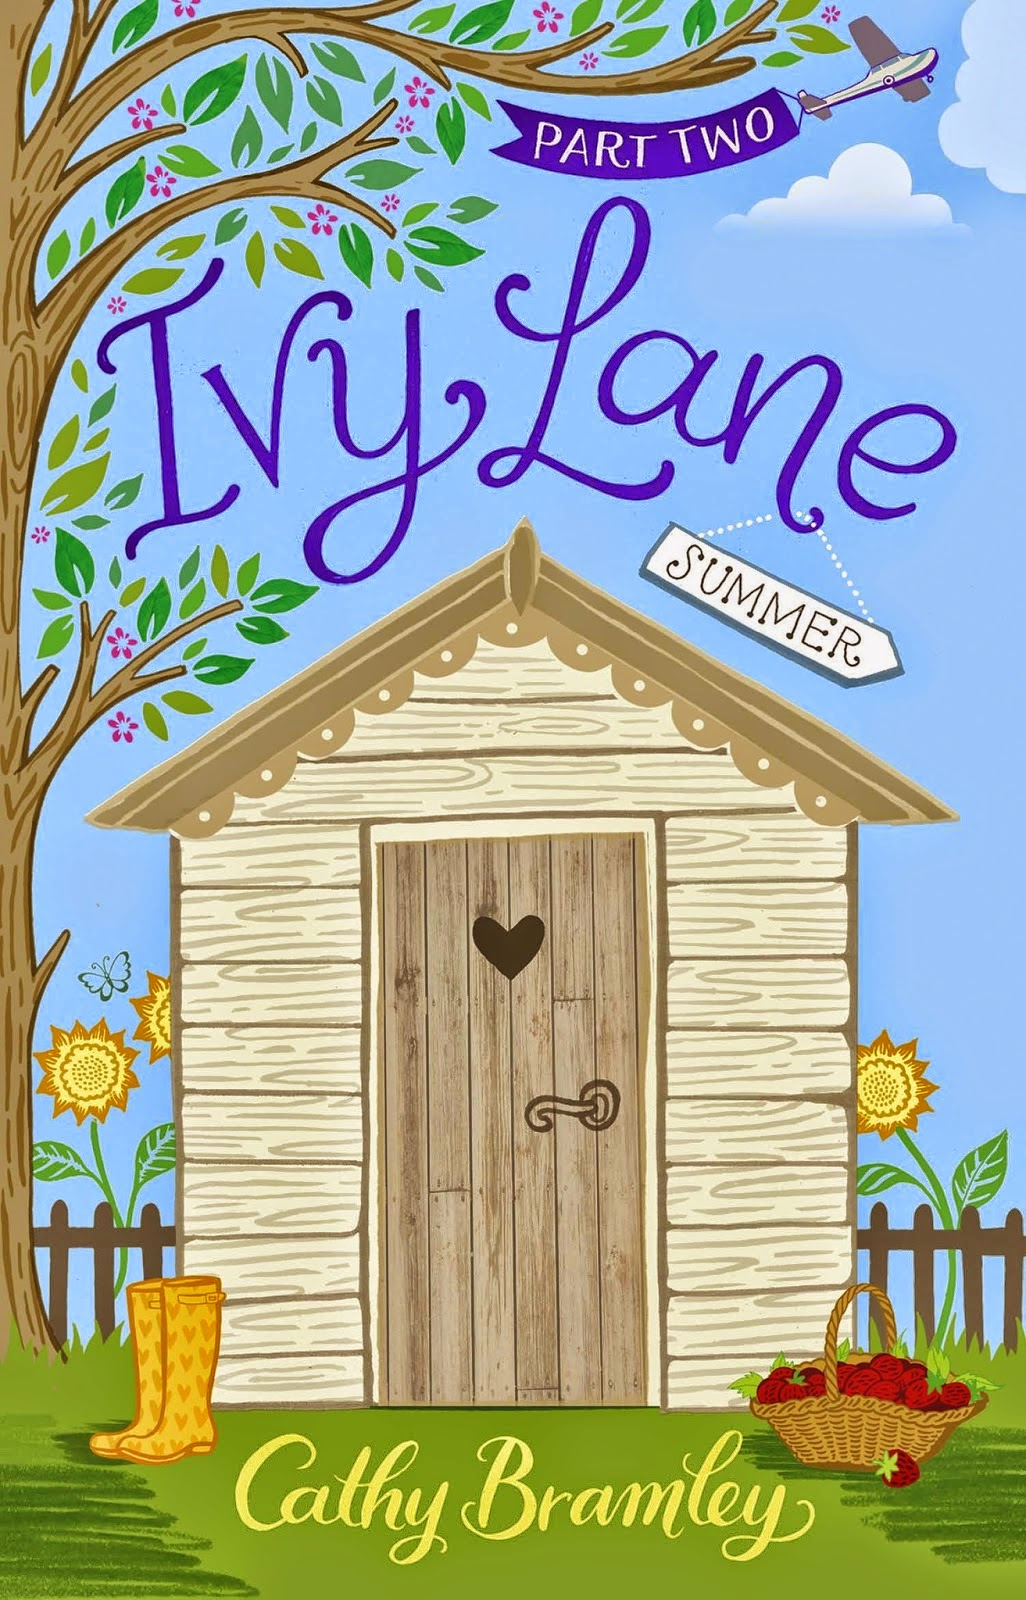 Ivy Lane Summer Review